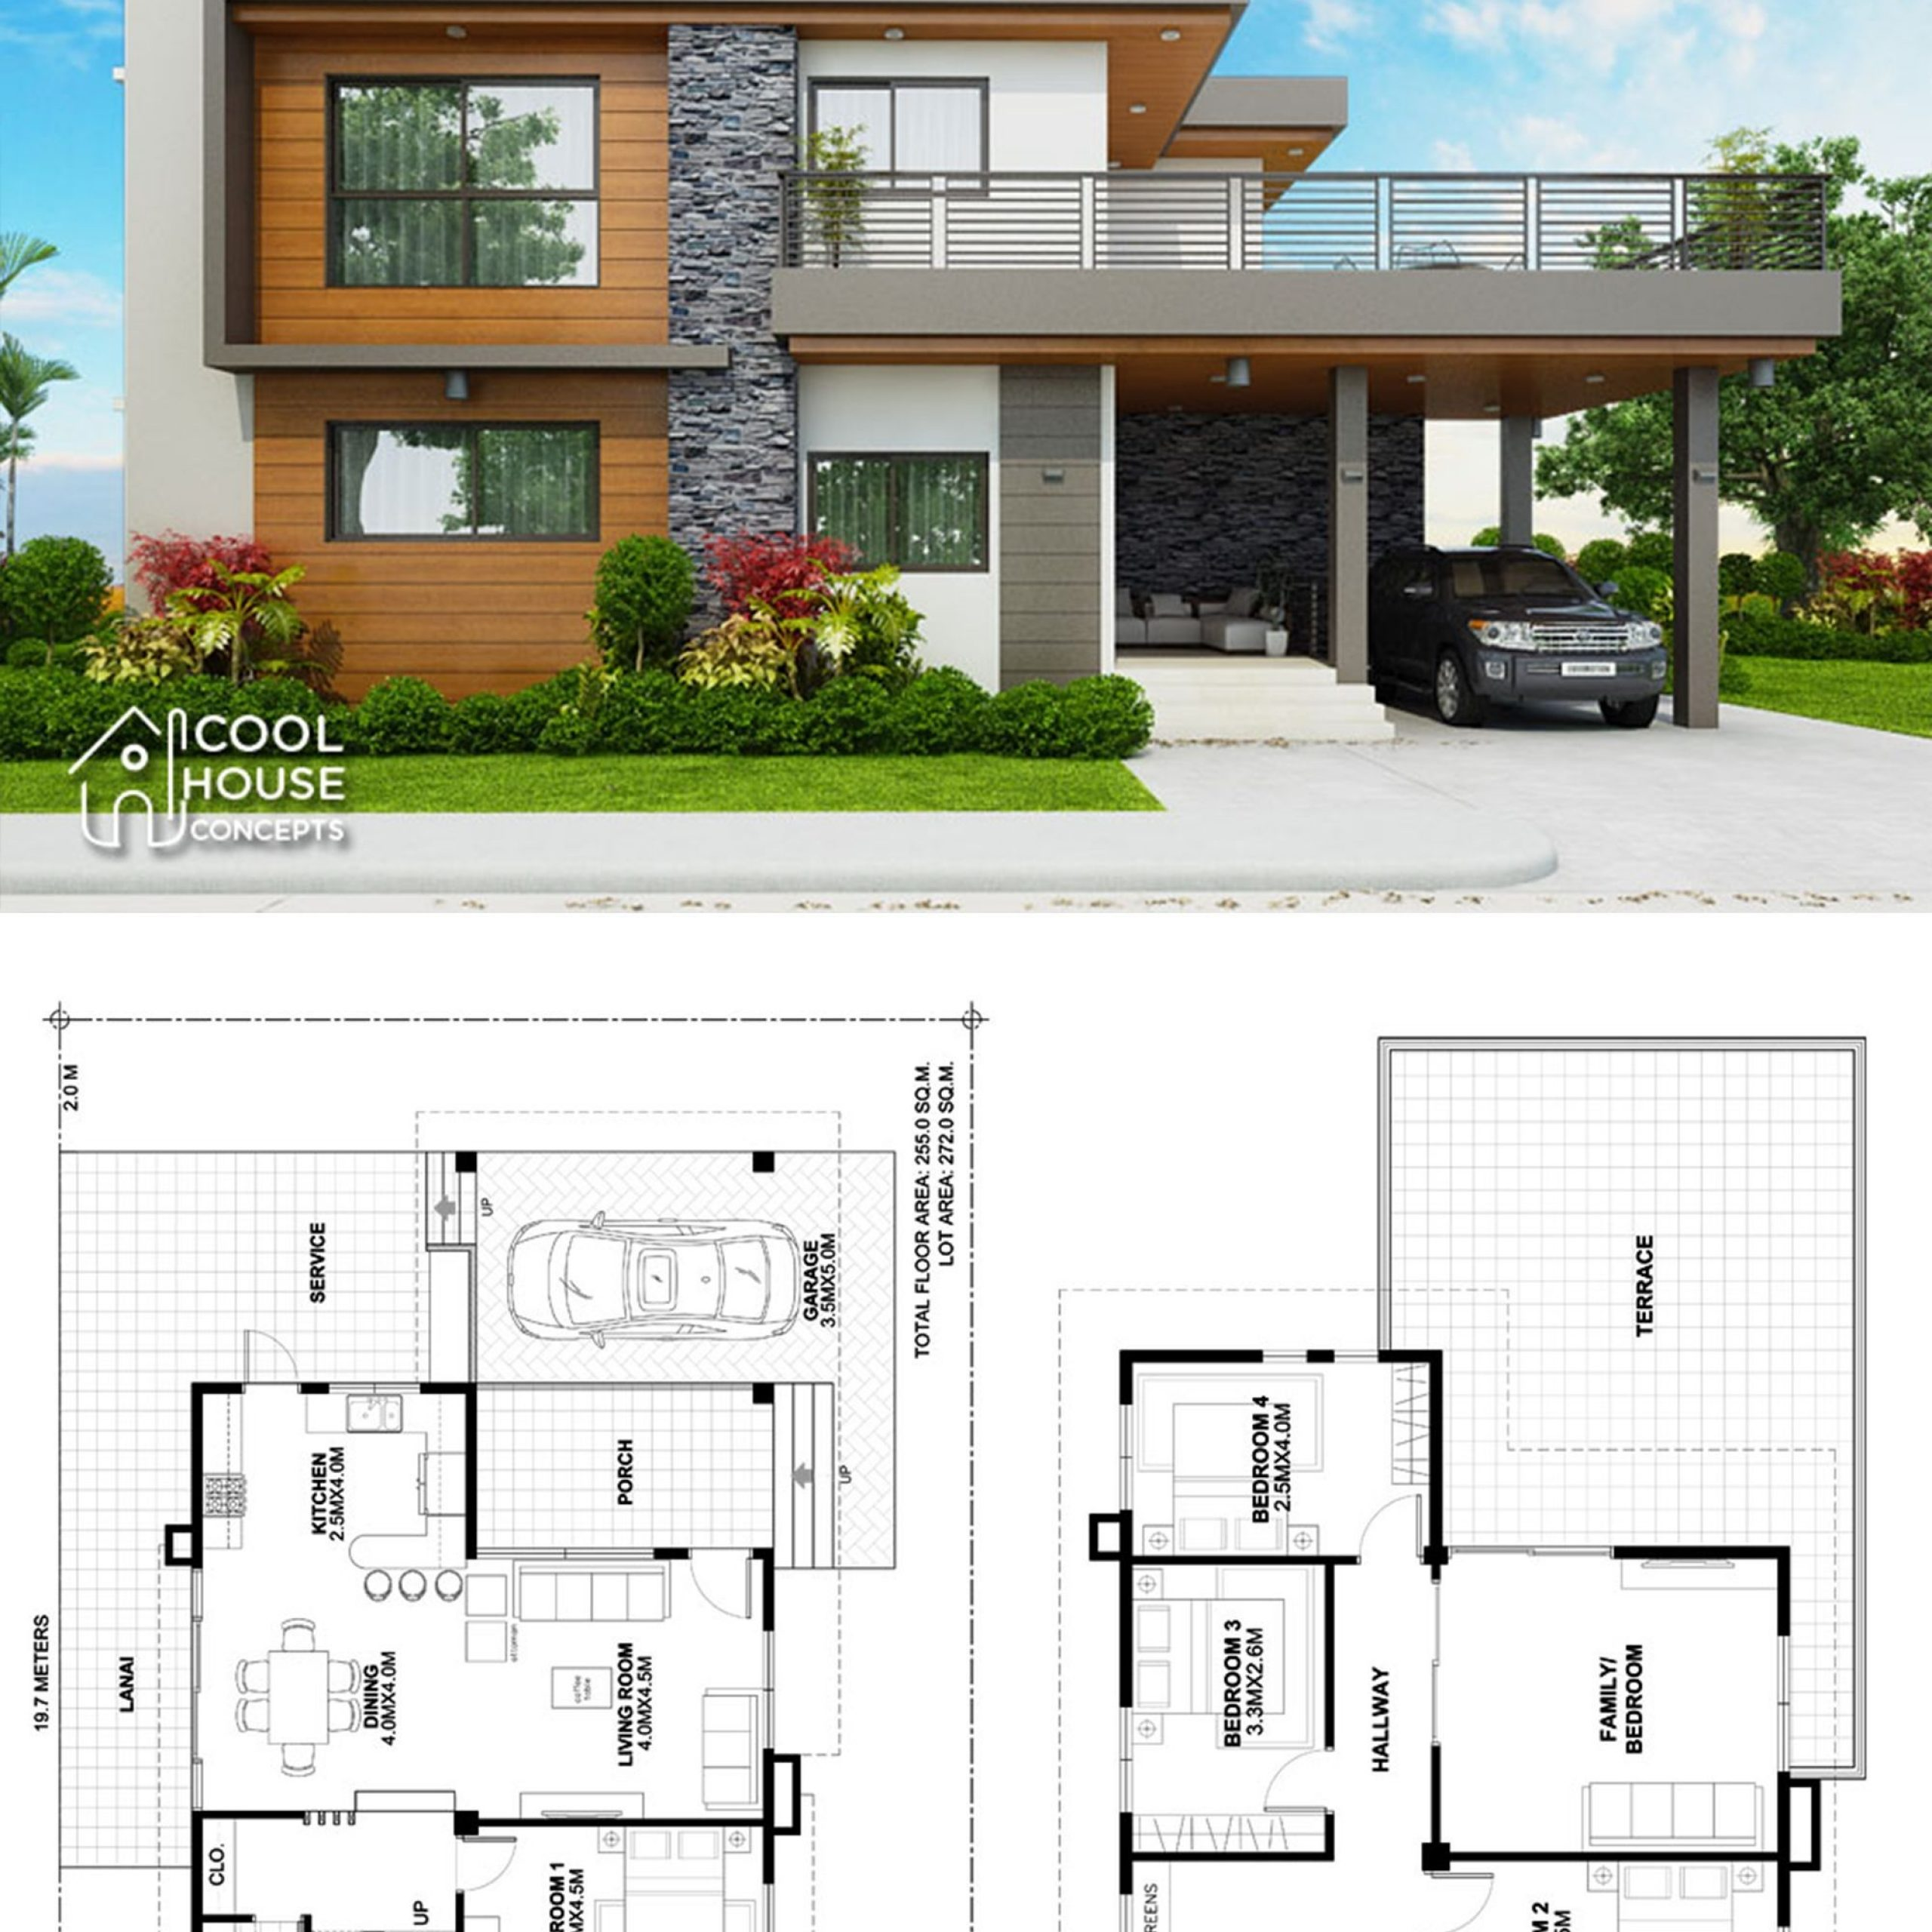 8e51fedda4ac3aabbfb0d3e6aa458fb4 on Modern House Designs Pictures Gallery id=1005763